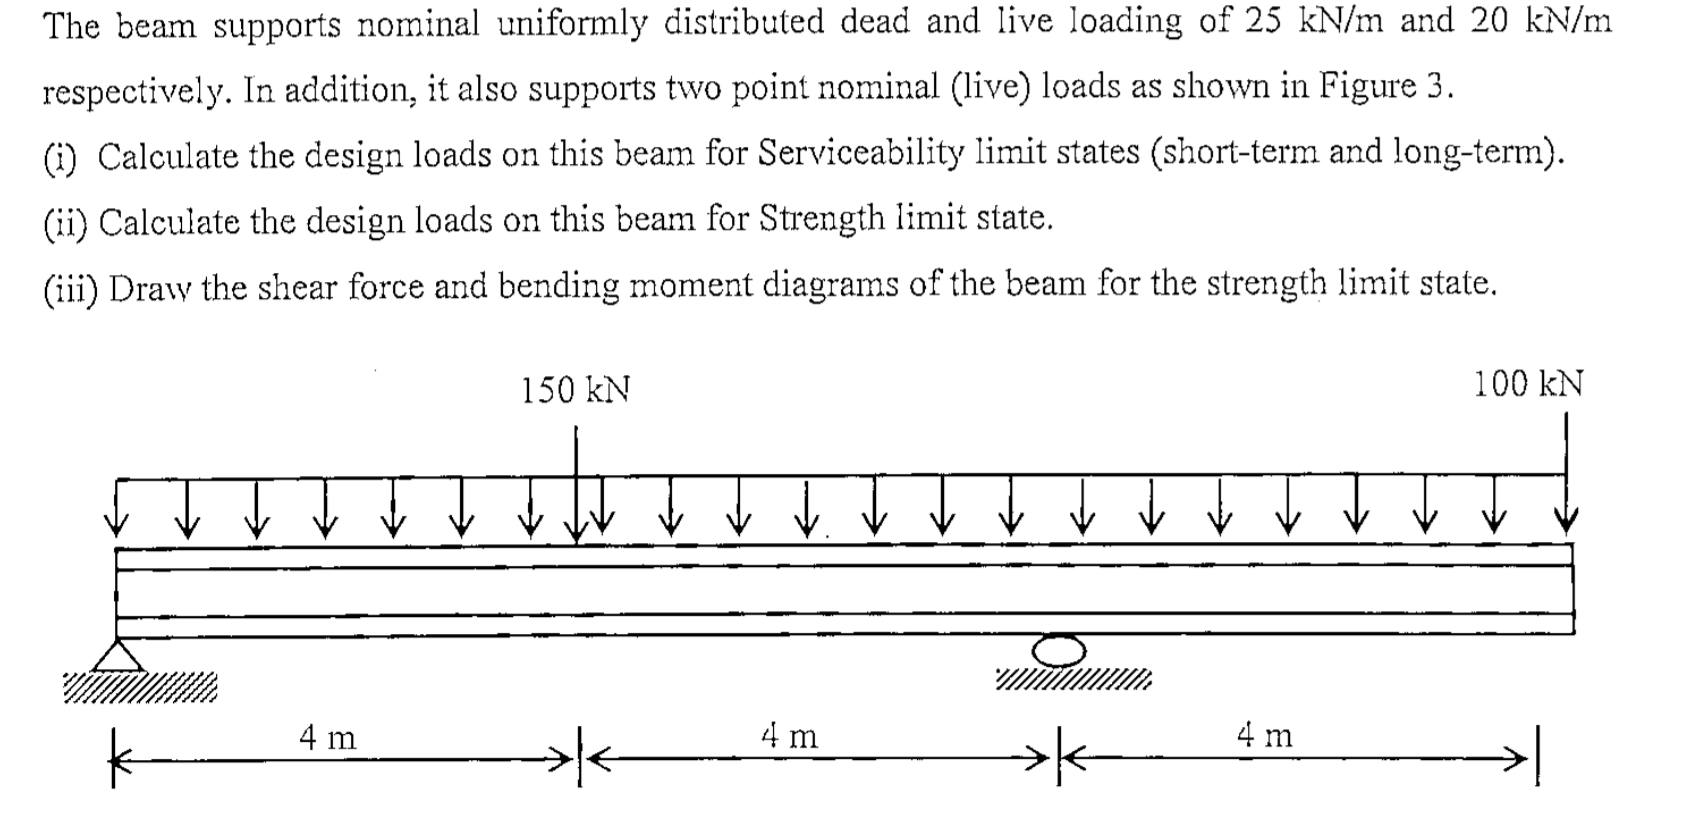 shear stress and bending moment diagram 2001 suzuki gsxr 750 wiring solved the beam supports nominal uniformly distributed de